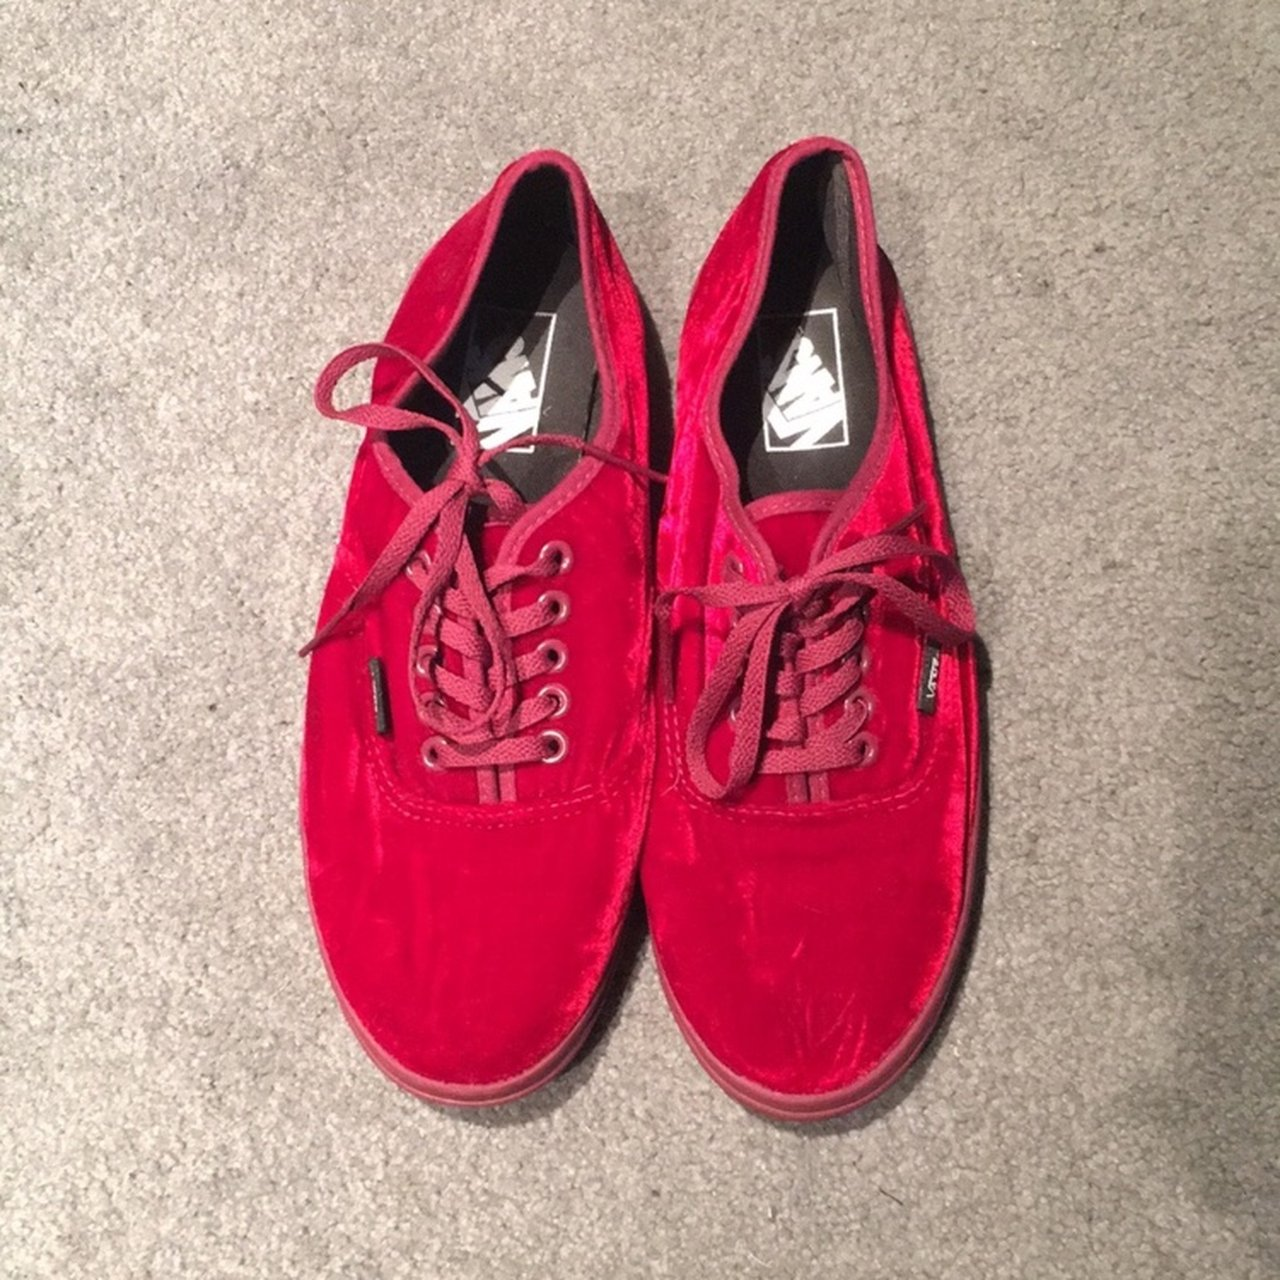 056697b24fa747 Vans red velvet lo pro sneaker in perfect condition